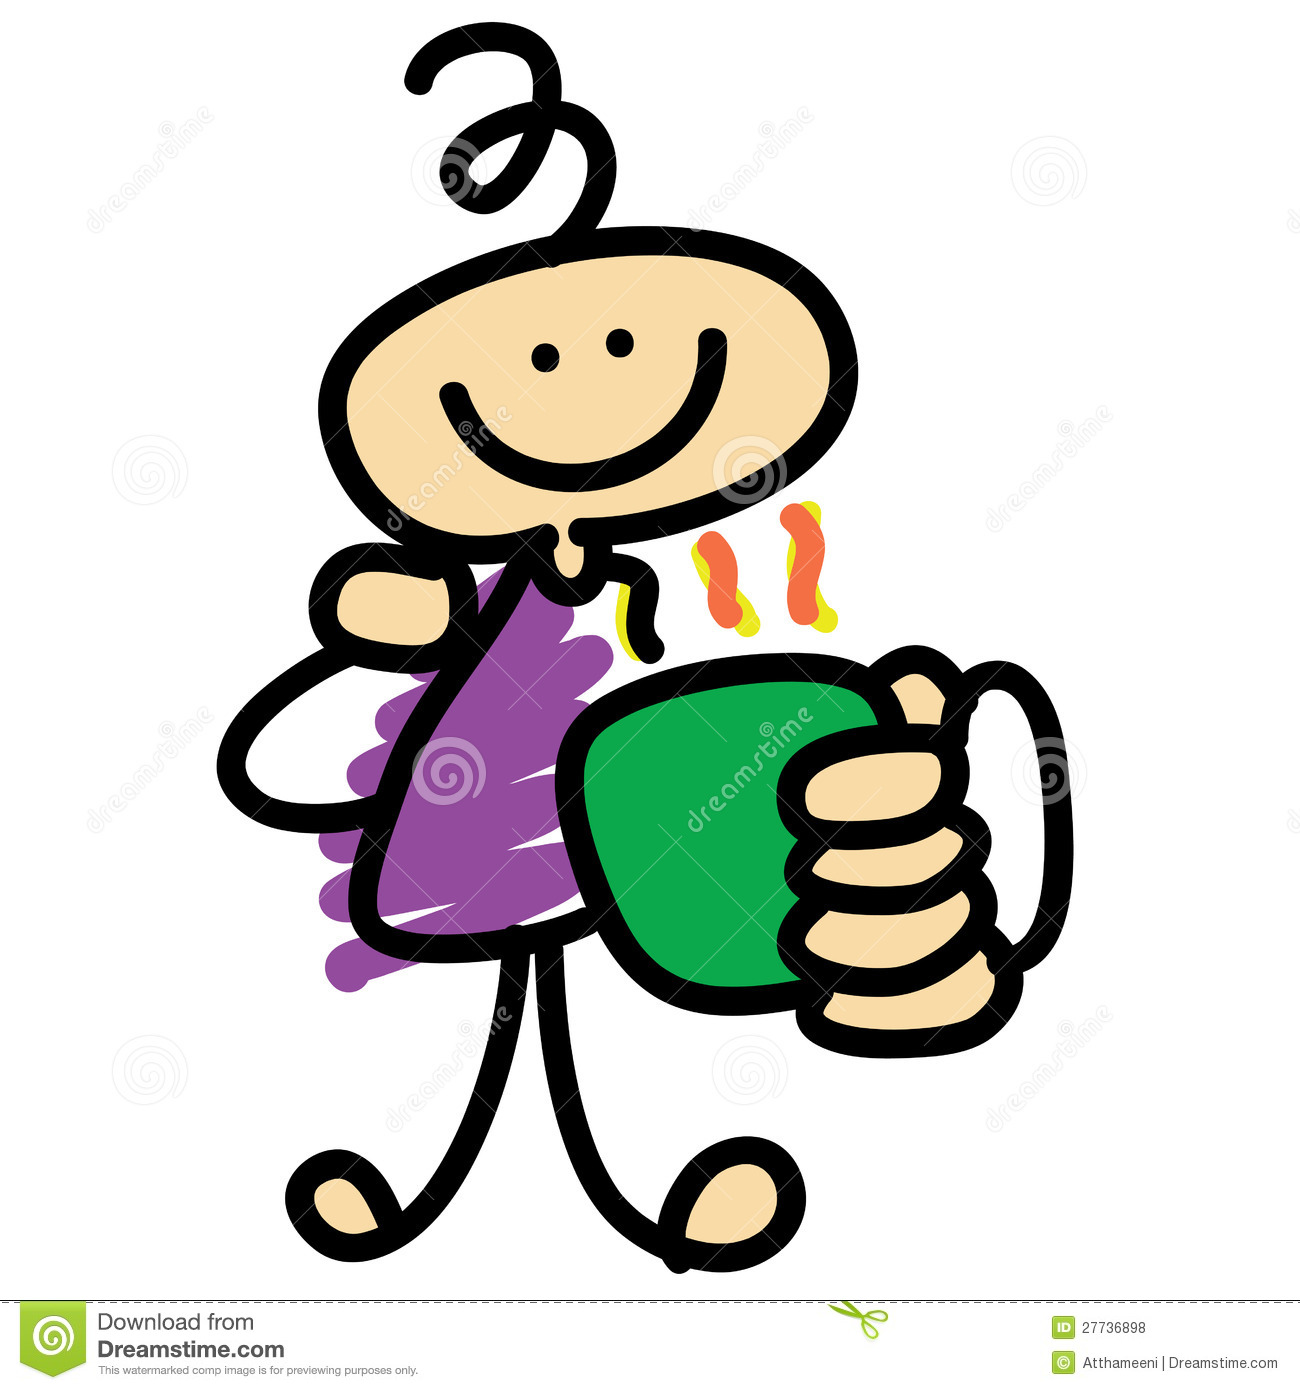 coffee time cartoon character hand drawn royalty free teacup clip art to download for free tea cup clip art printable free